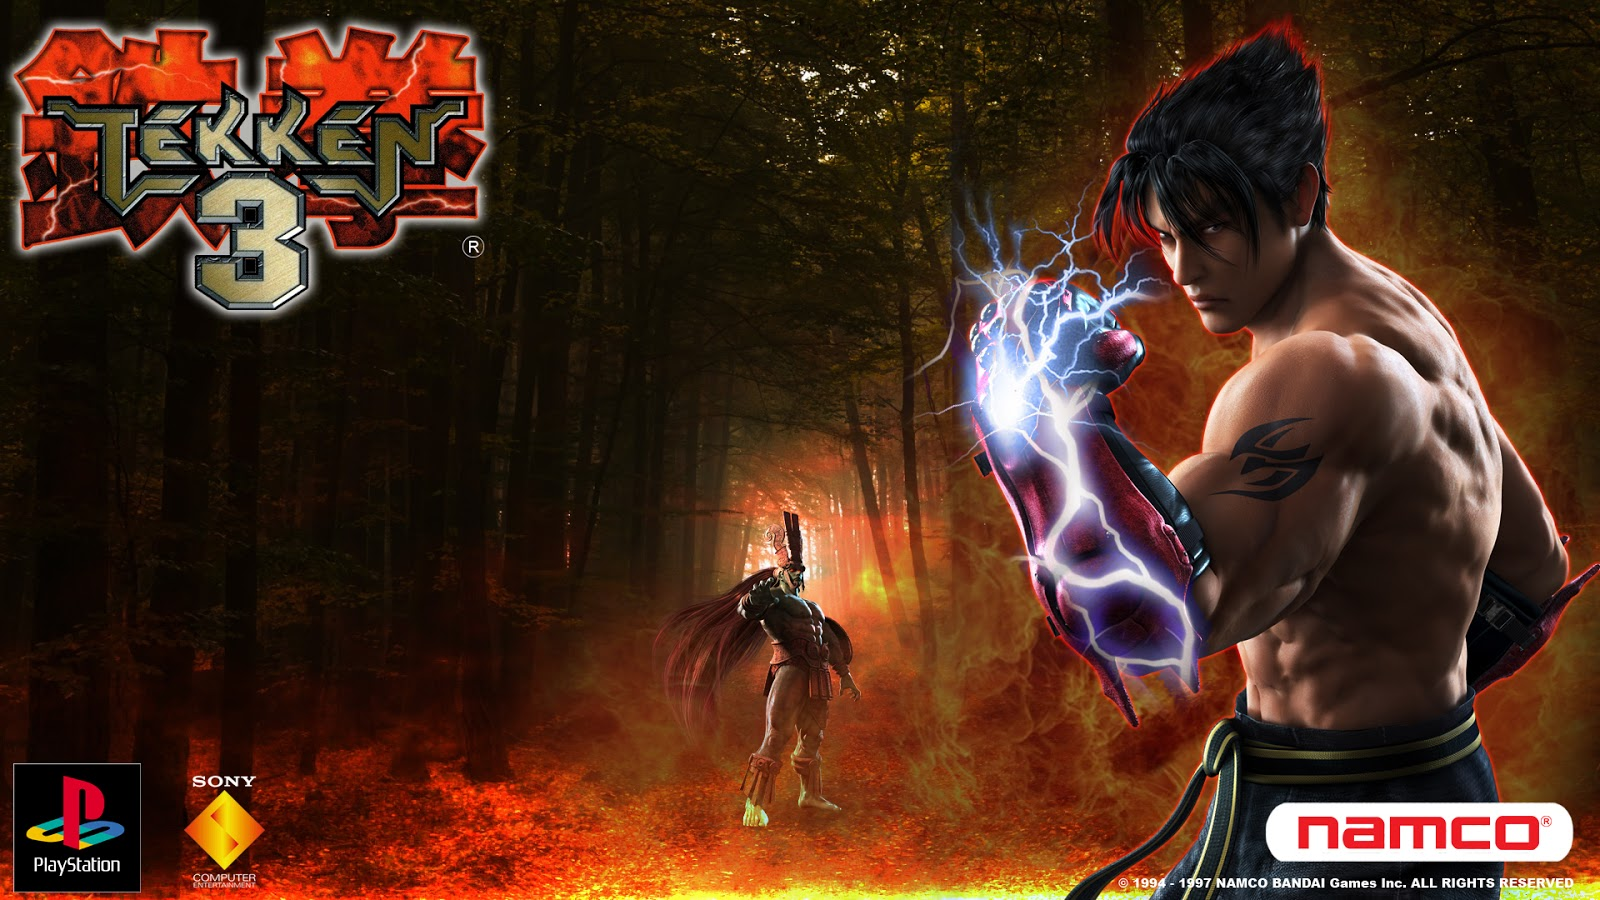 tekken 3 full game setup free download (size 26.31 mb) - zohaib soft